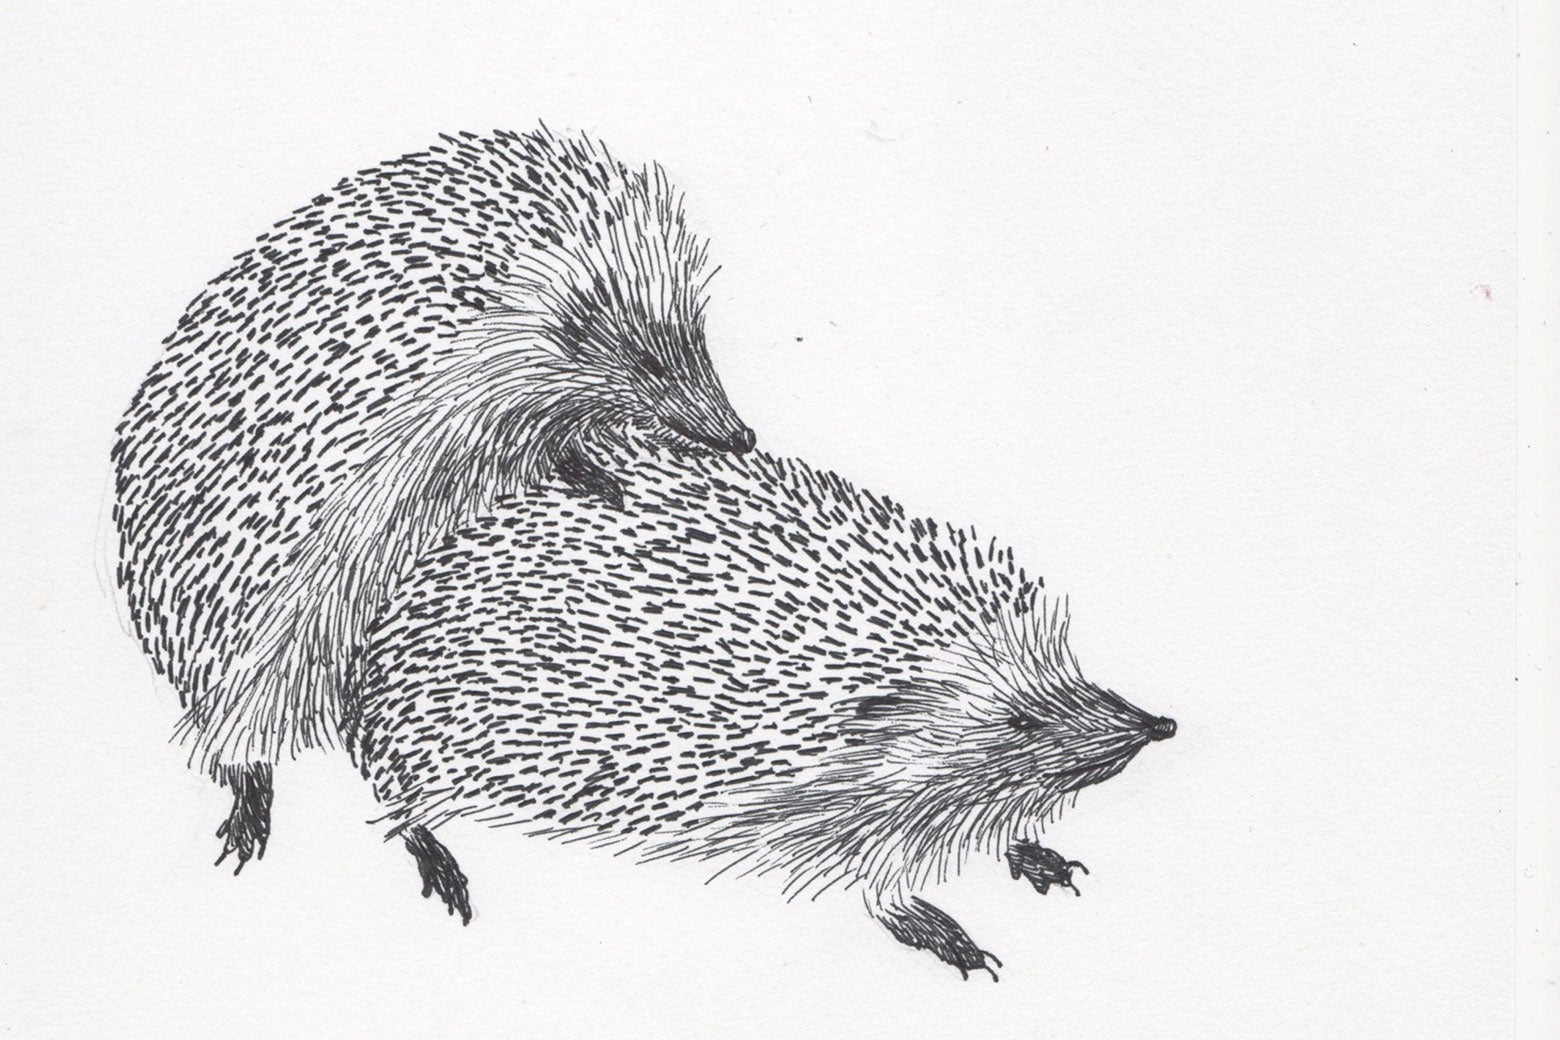 Image of: Giraffe Hedgehogs Doin It 123rfcom Talking To Kids About Sex Using Animal Examples